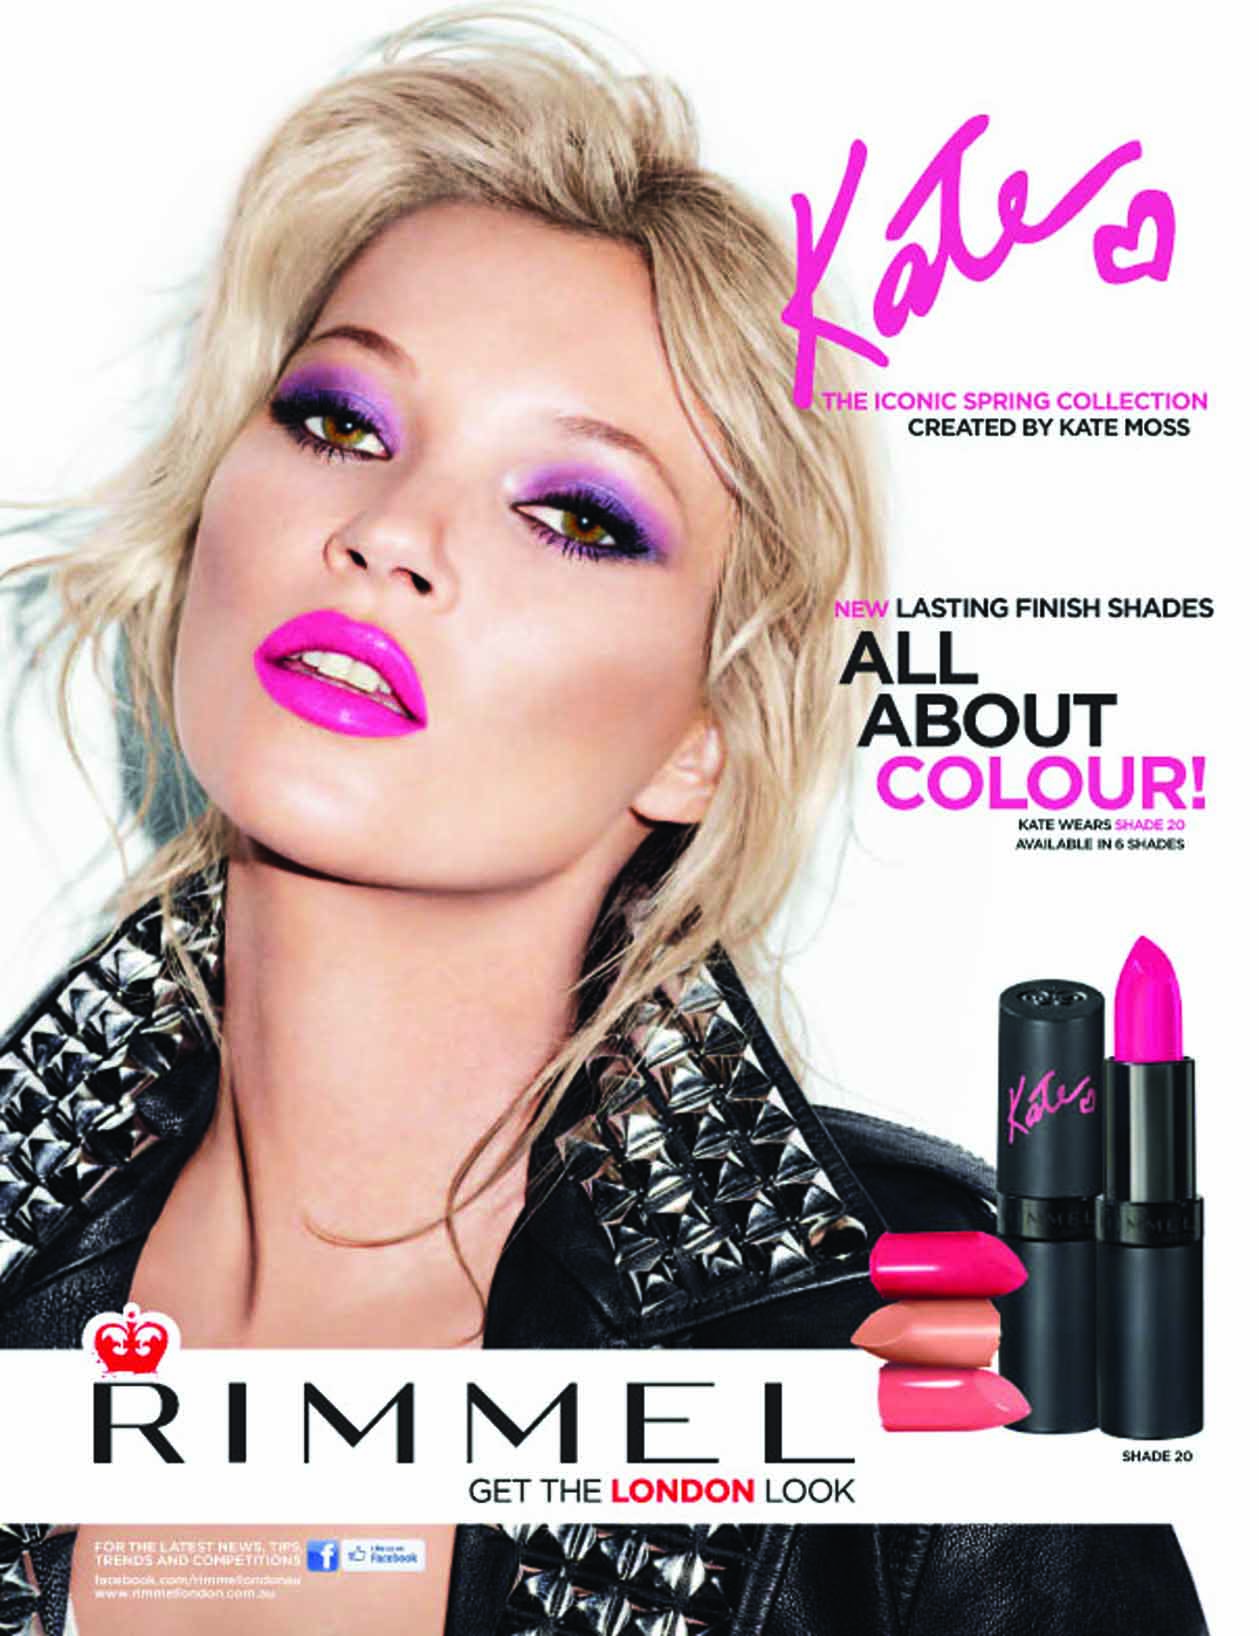 Beautiful Blonde British Fashion Model Kate Moss Modeling For Cosmetics Brand Rimmel London Fashion Advertisements And Rimmel London Fashion Ads Modeling As One Of The Highest Paid Models In The World.